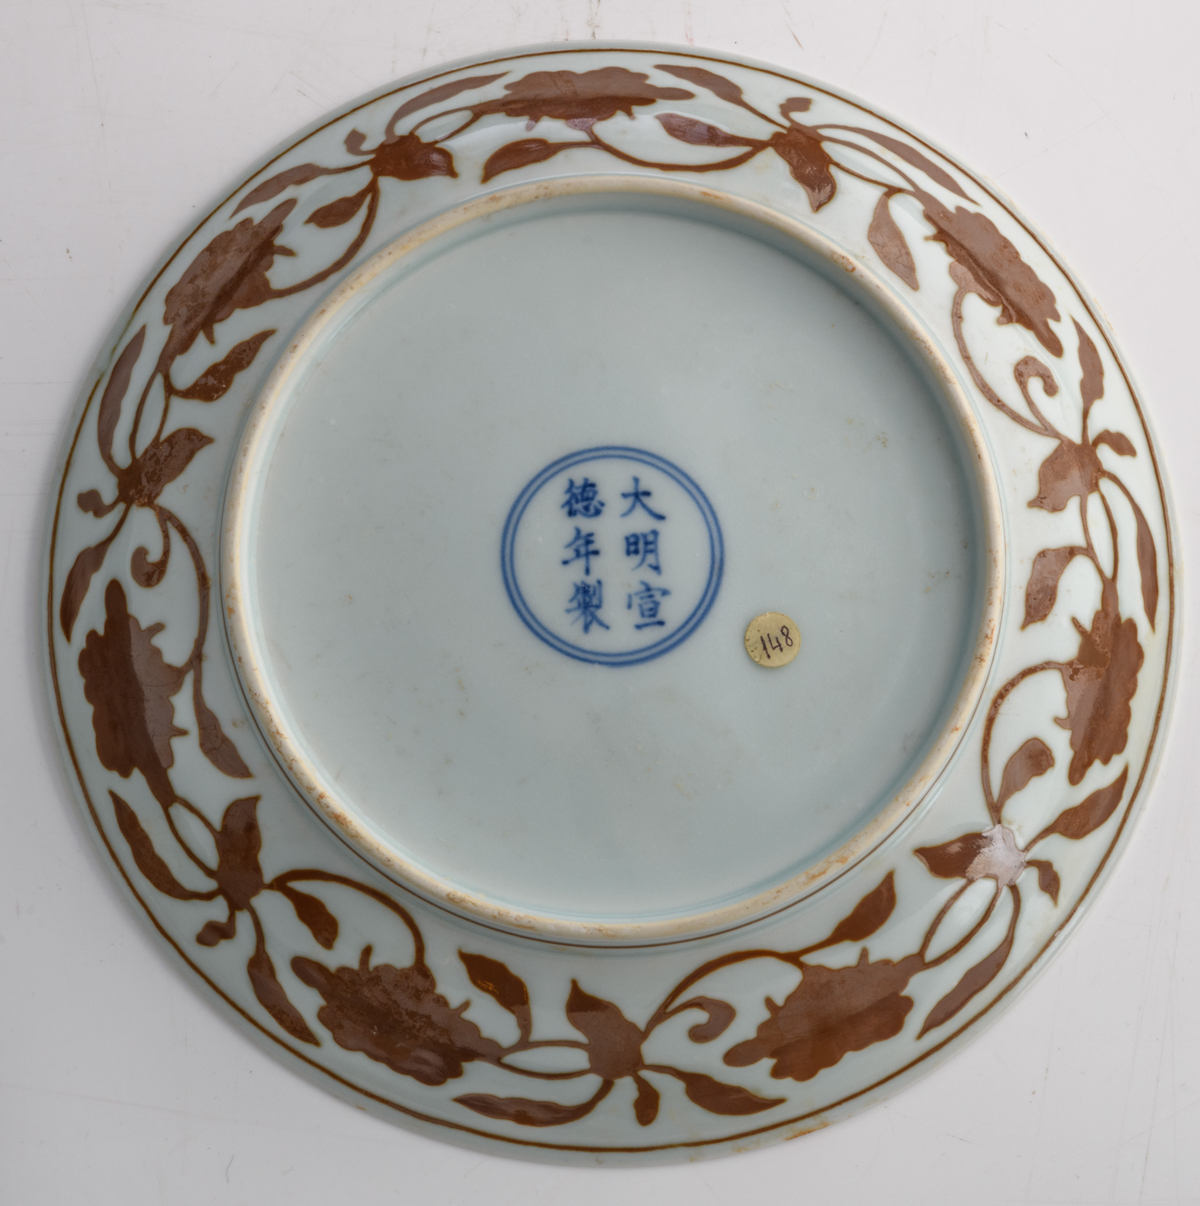 Lot 35 - A Chinese copper red plate, decorated with lotus flowers, pomegranates, peaches, and persimmons,